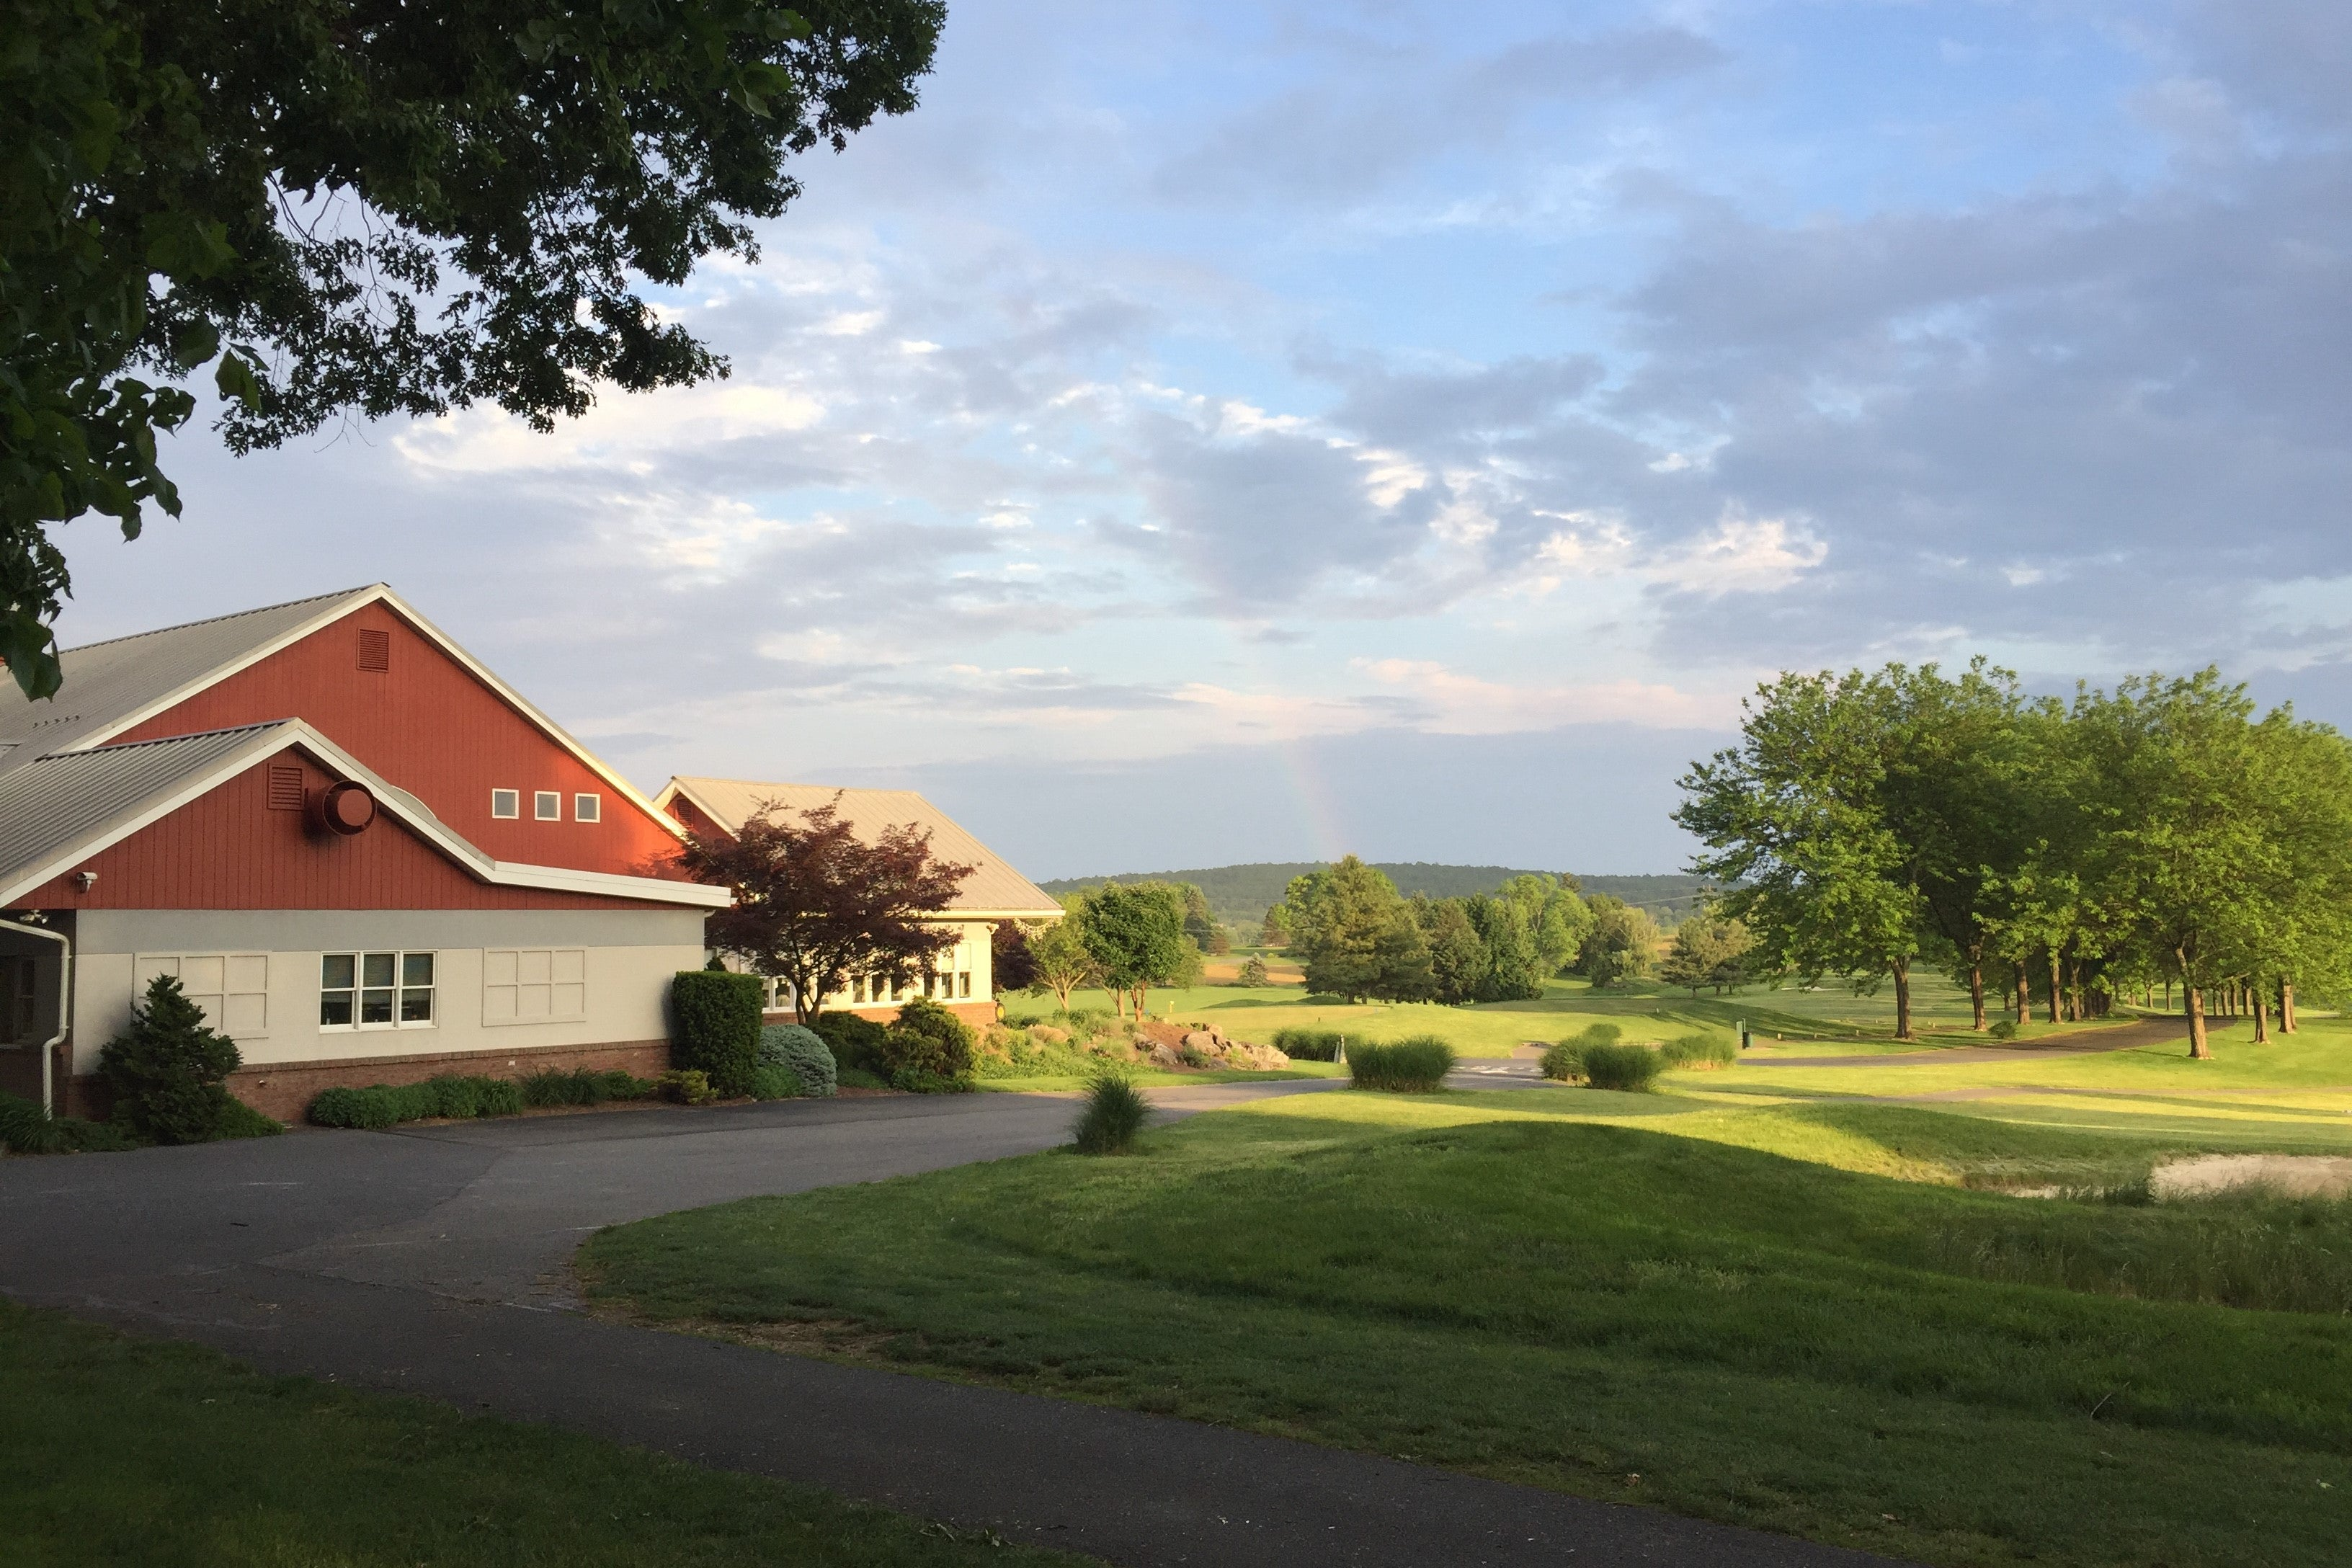 Foxchase Golf Club - View From the Outdoor Banquet/Wedding Facility